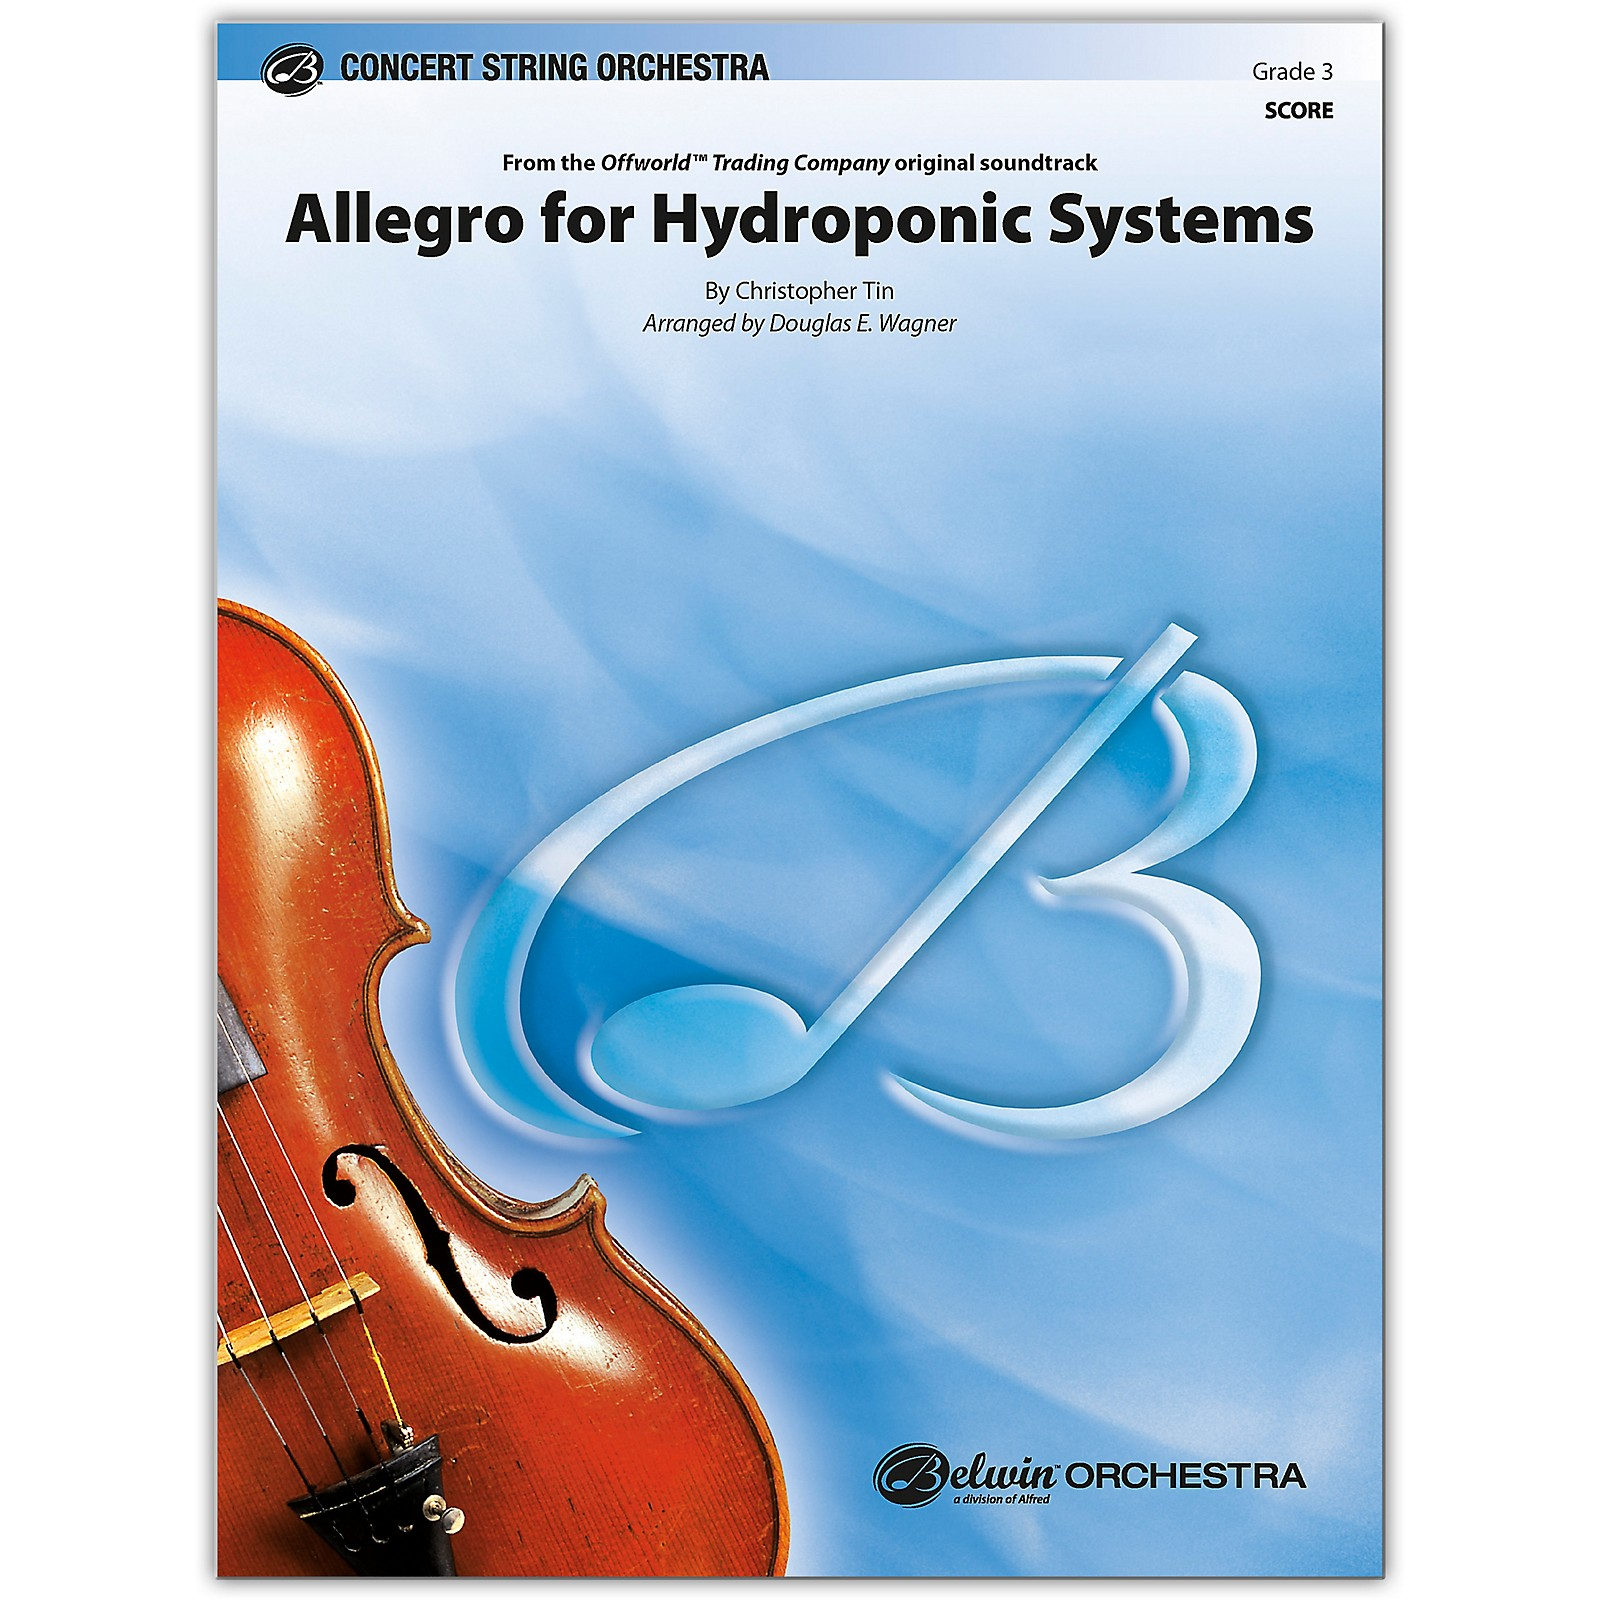 BELWIN Allegro for Hydroponic Systems Conductor Score 3